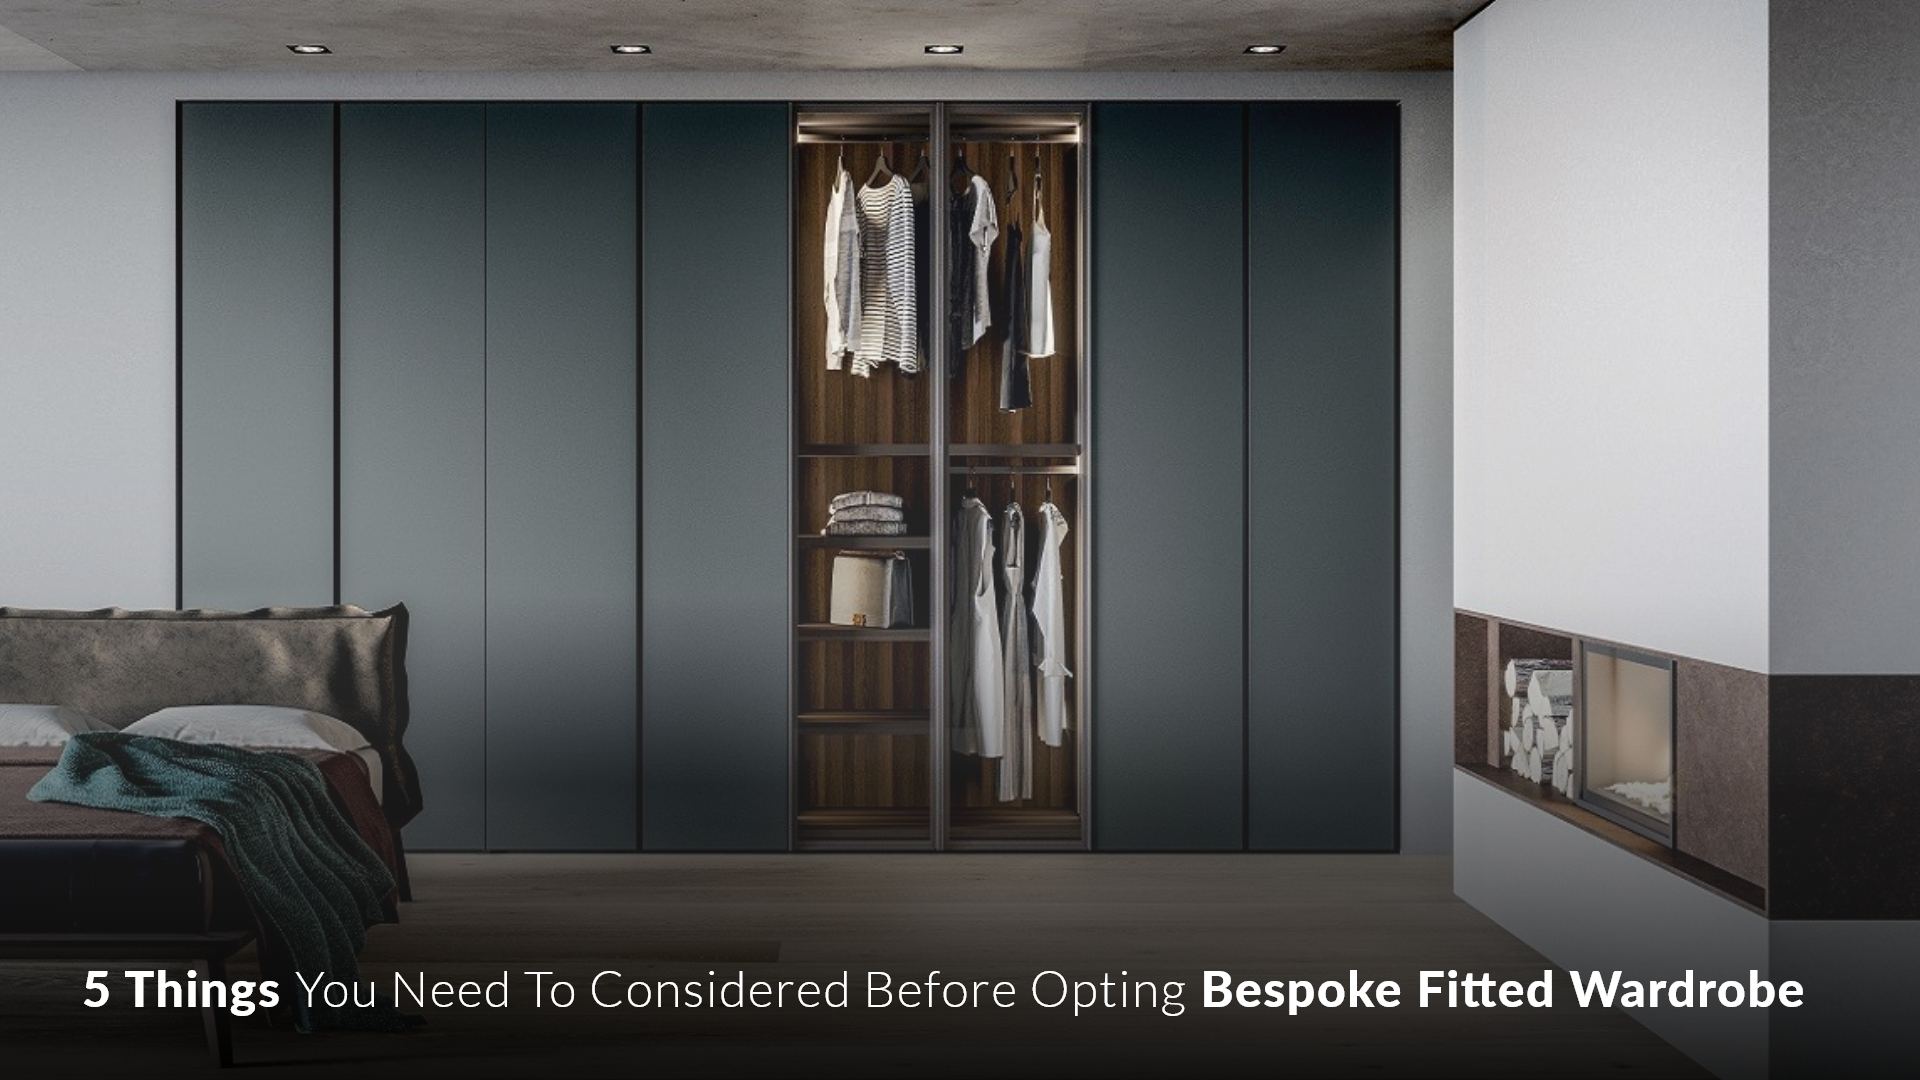 5 Things You Need To Considered Before Opting Bespoke Fitted Wardrobe